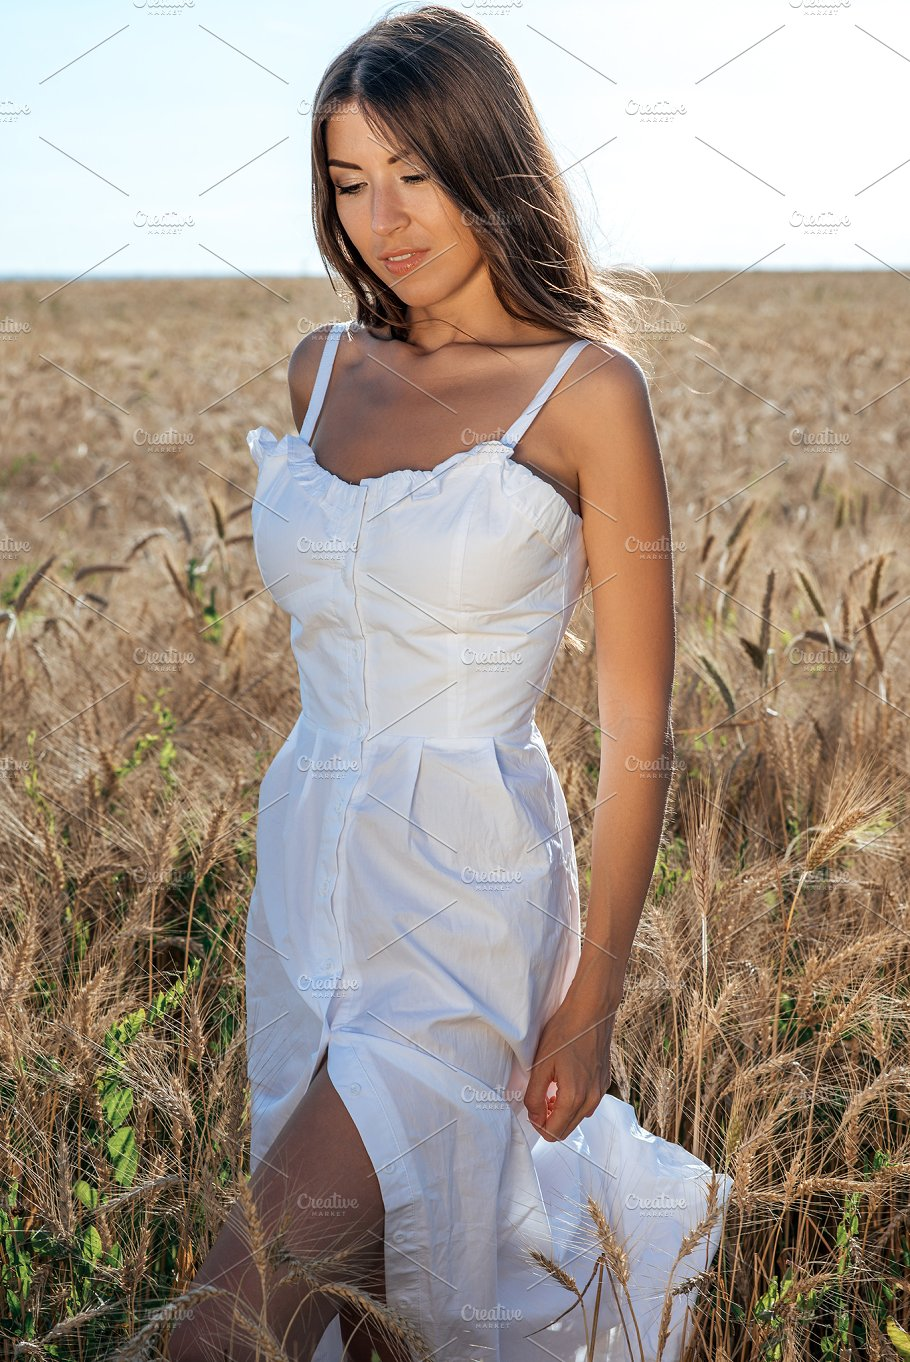 girl in a white dress field wheat outdoor recreation beautiful dress a woman